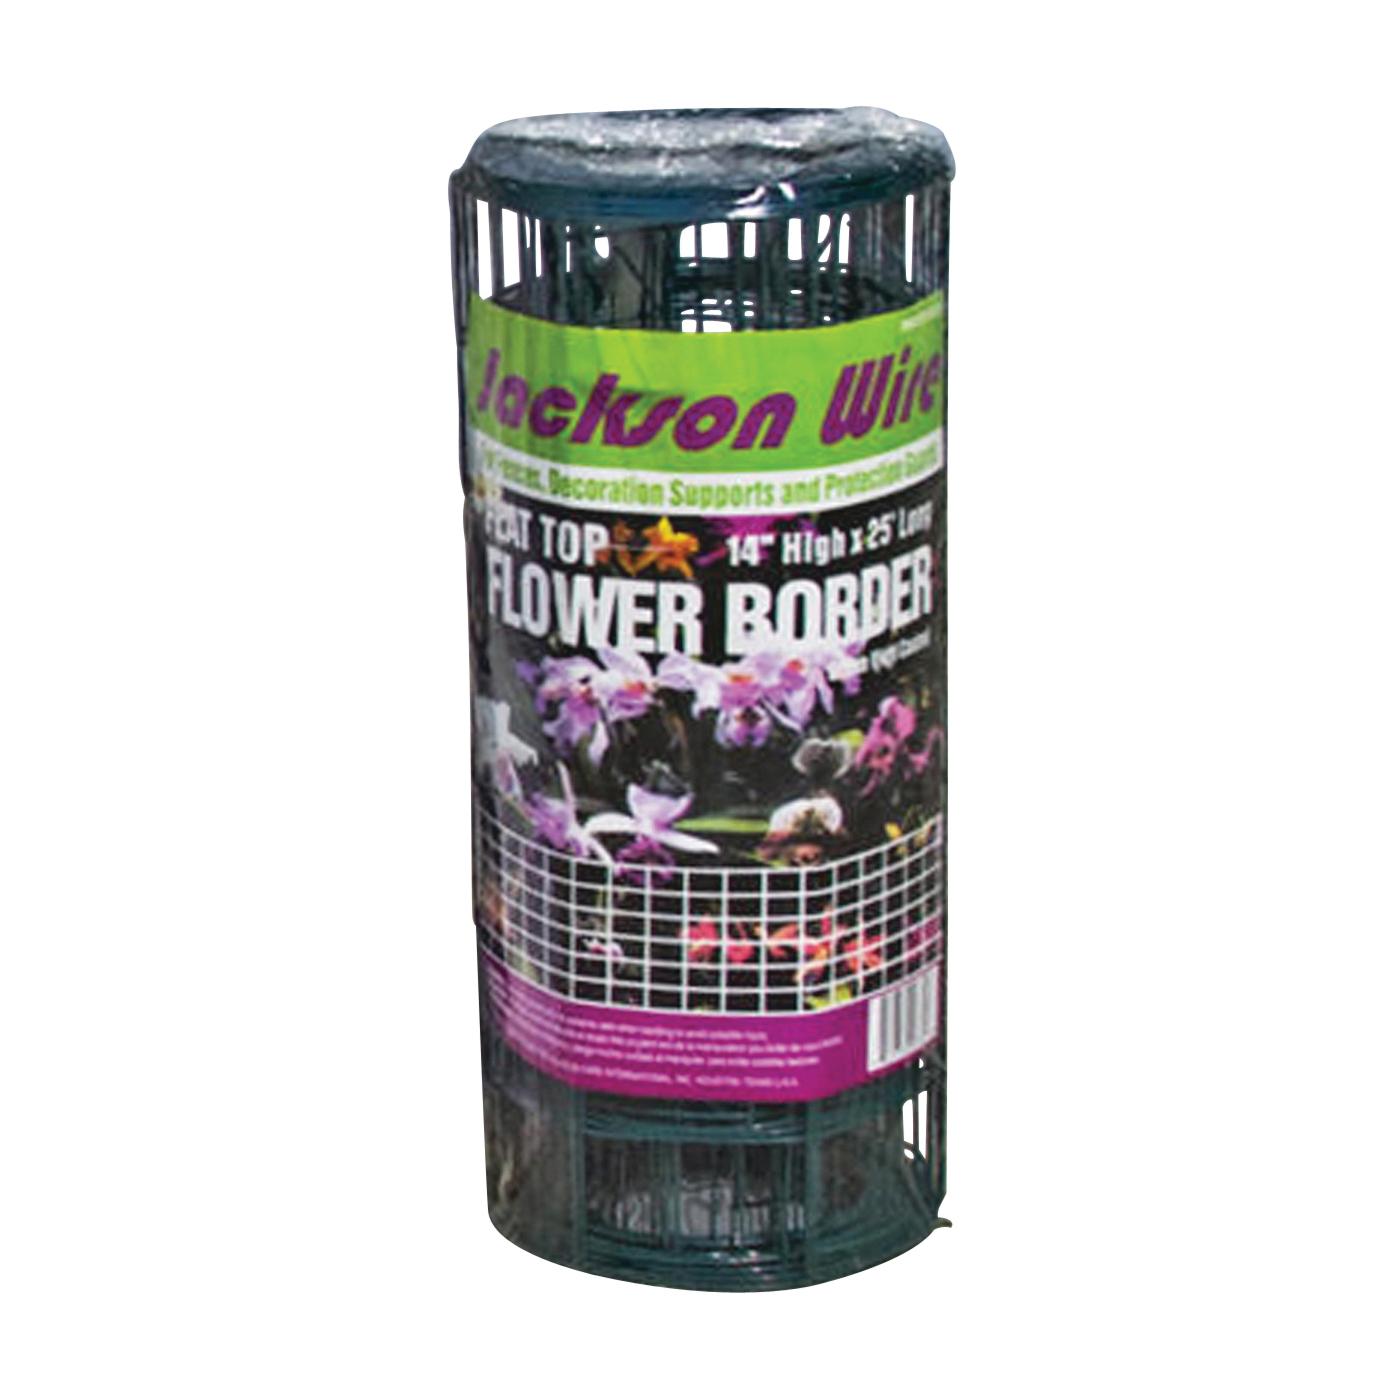 Picture of Jackson Wire 13015330 Flower Fence, 25 ft L, 14 in H, Galvanized Steel, Green